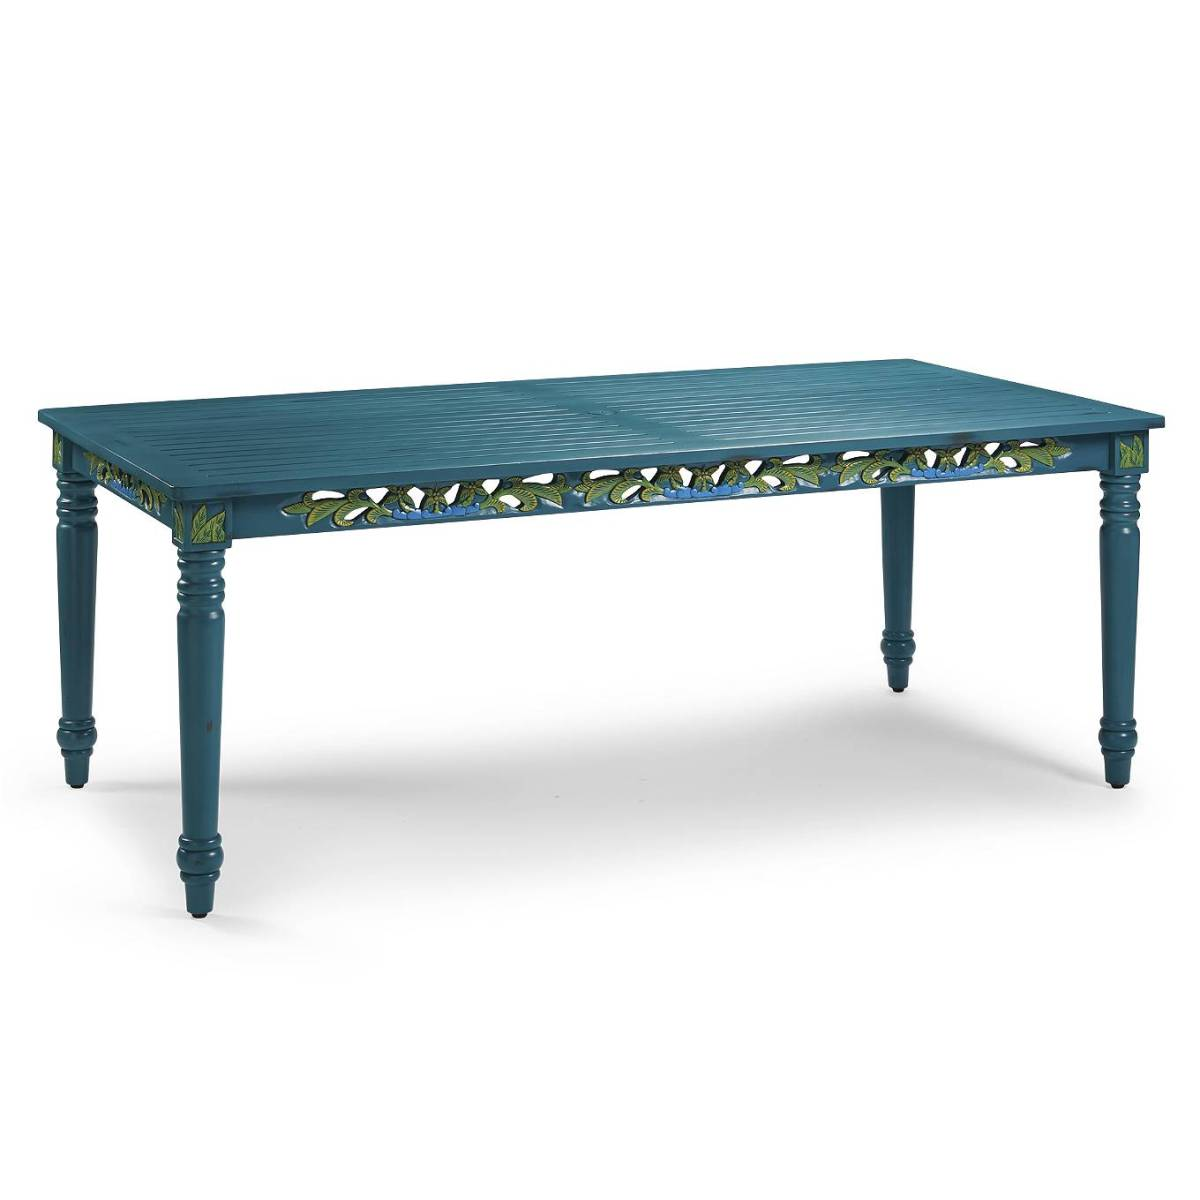 Margaritaville St. Barts Rectangular Dining Table